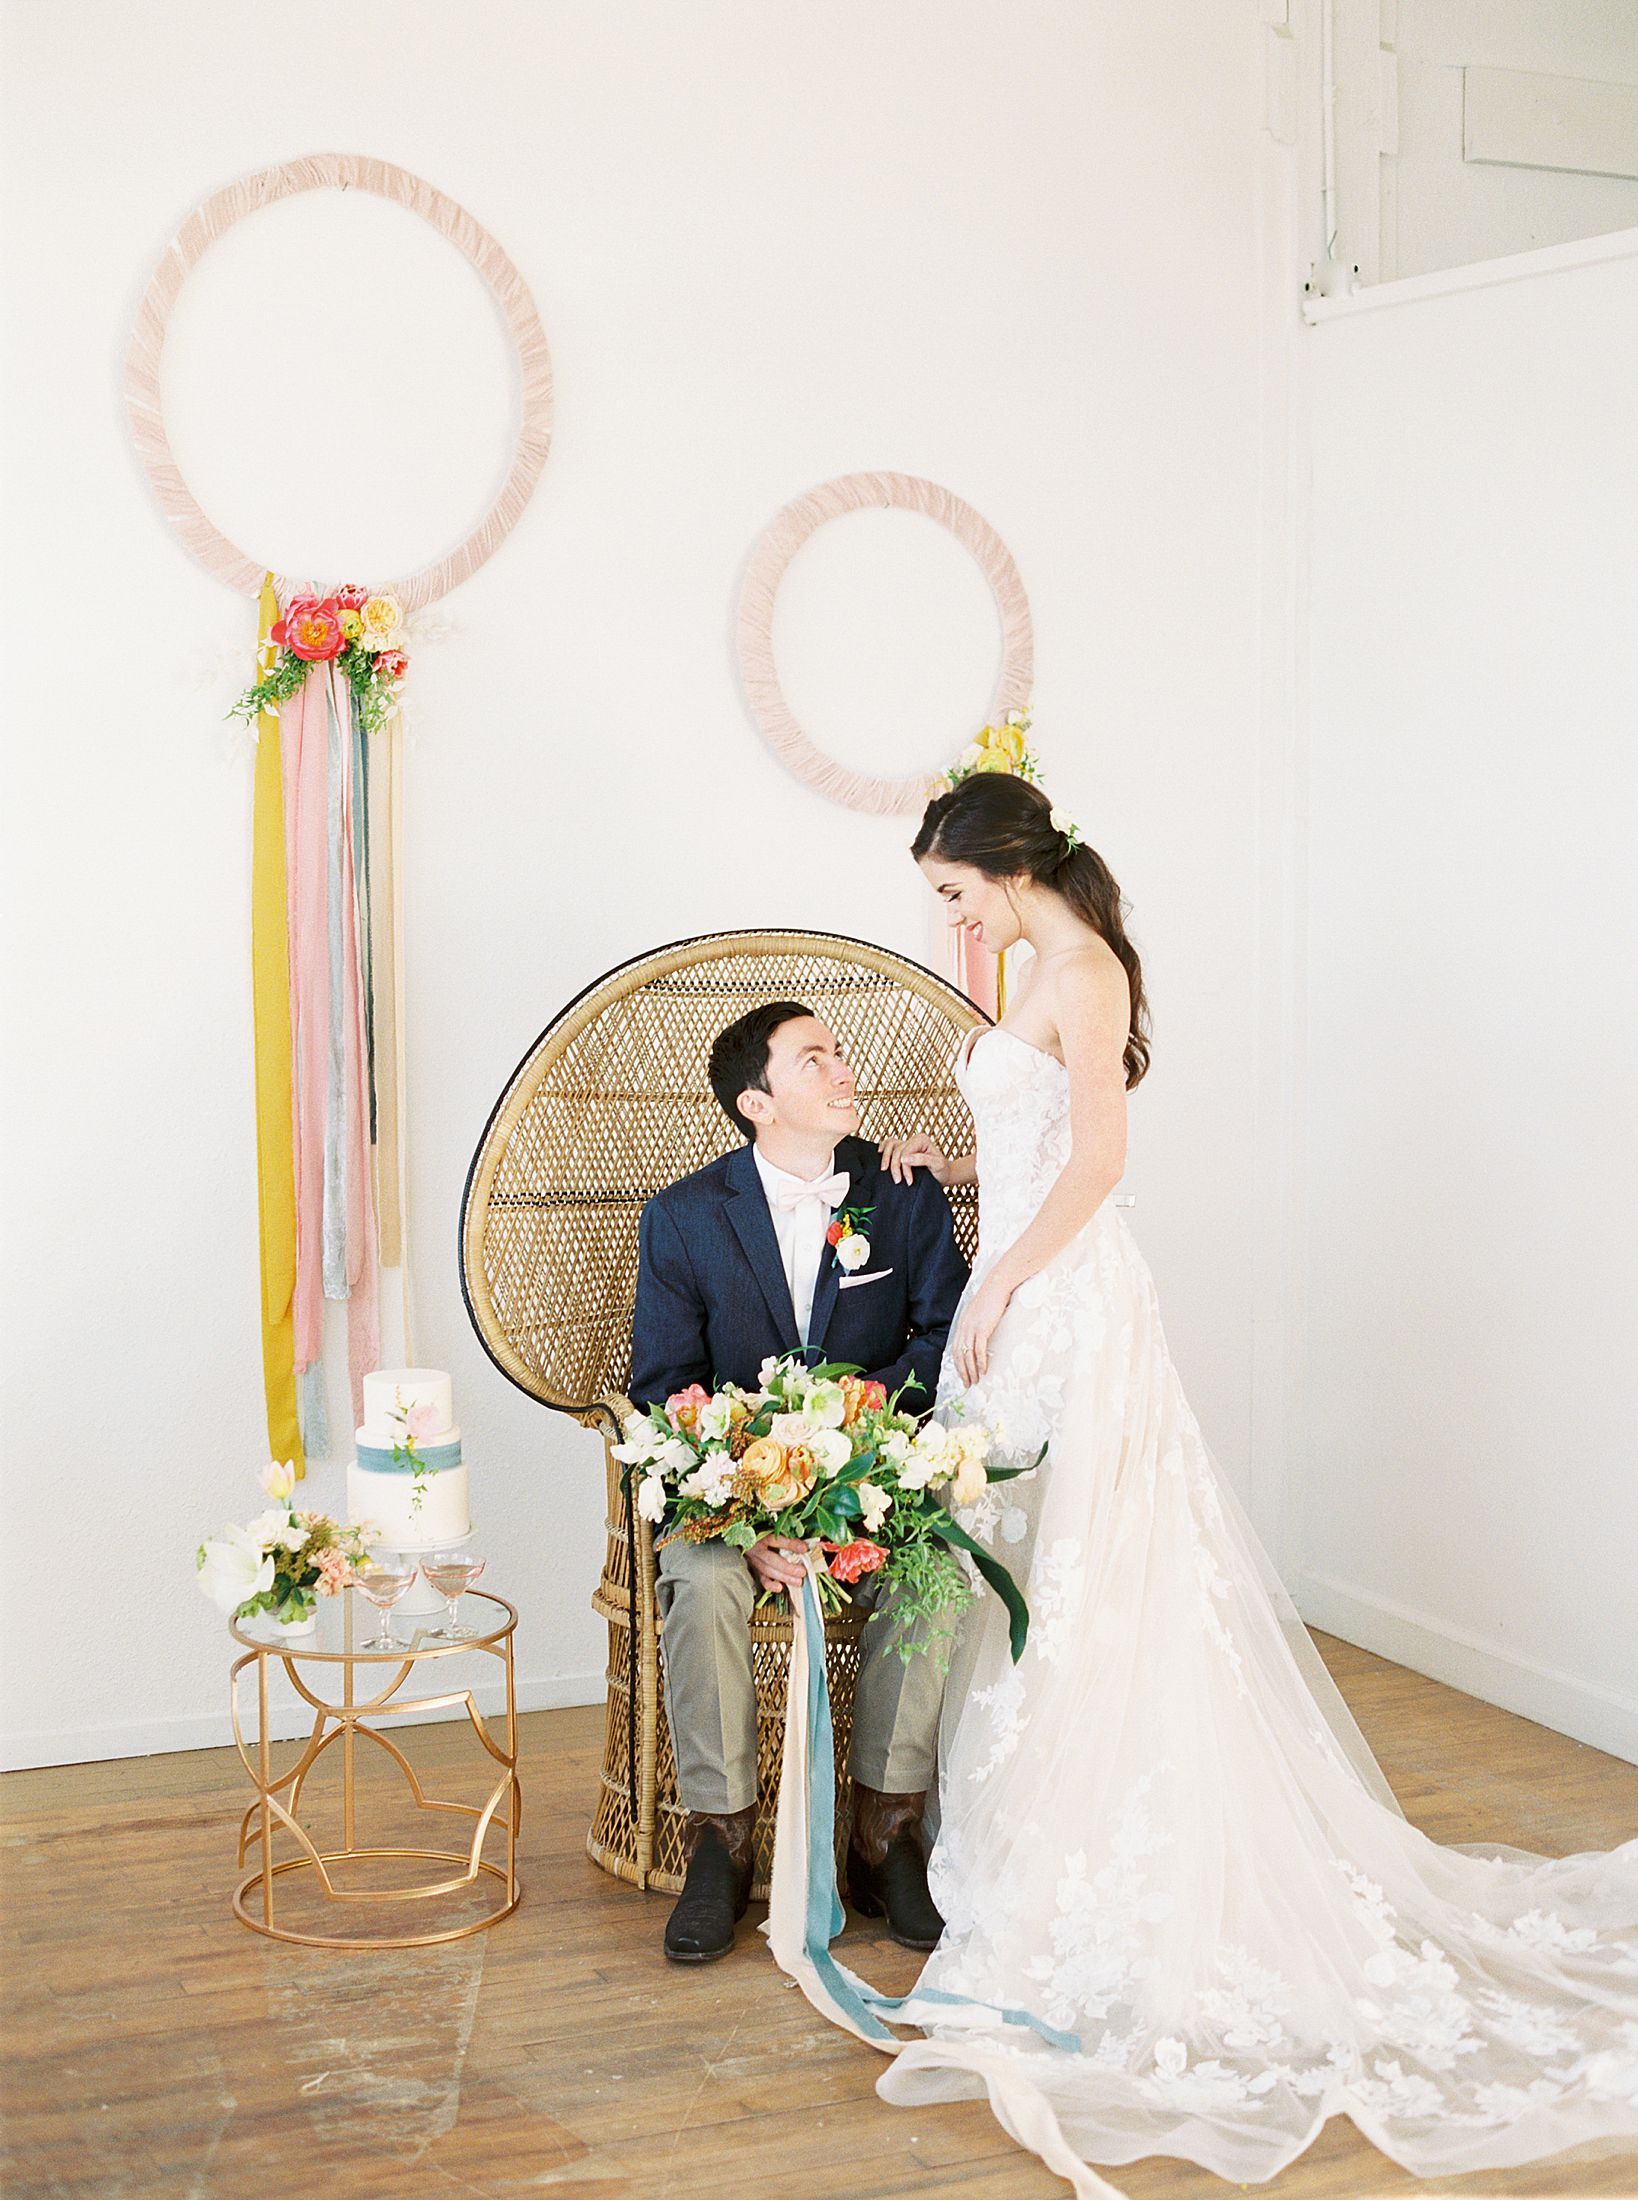 Bay Area Spring Wedding Inspiration - Ashley Baumgartner - Inspired By This - Party Crush Studio and Lens of Lenox Videography - Bay Area Wedding Photography_0018.jpg